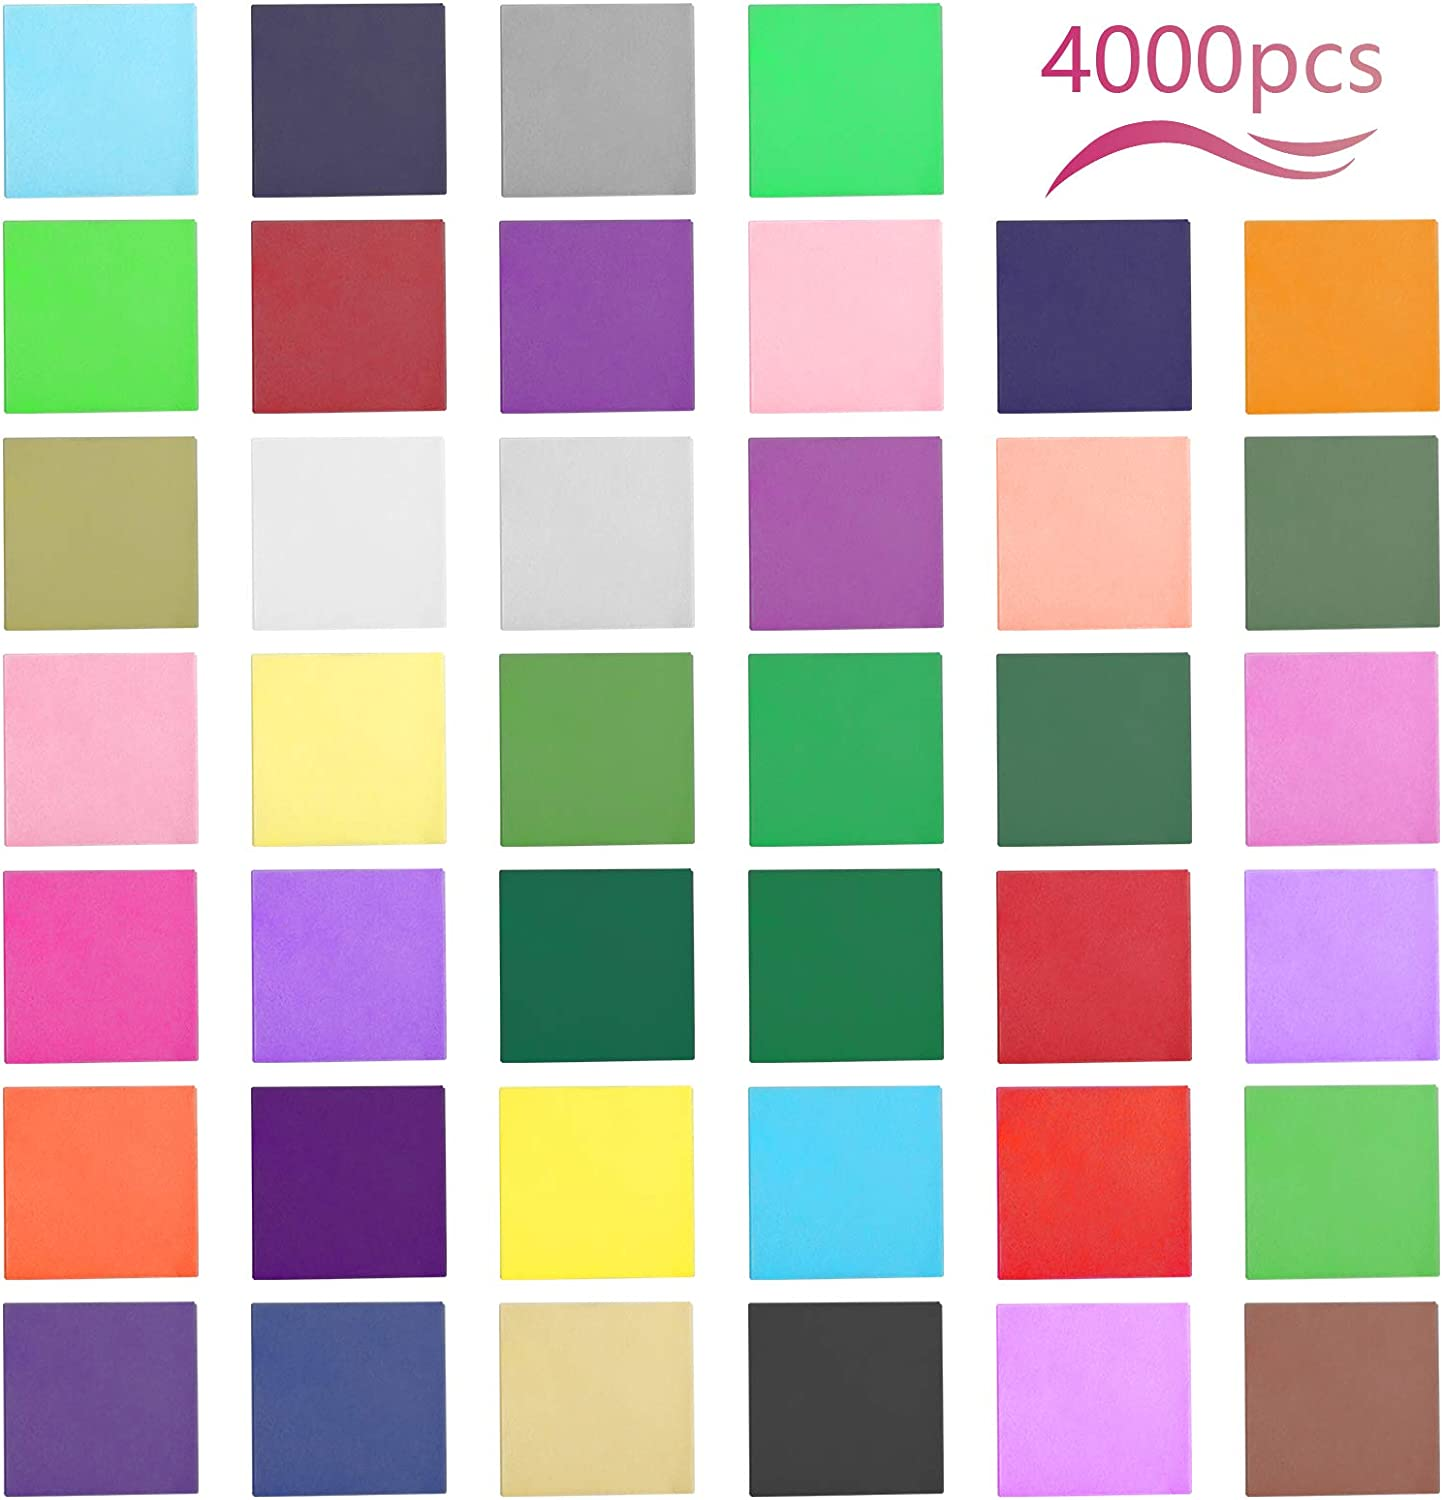 LAITER 4000 Pieces Small Tissue Paper Squares 40 Multi Coloured Mini Craft Tissue Paper Gift Scrapbooking Embellishments Handcrafts Paper DIY Art Projects Supplies 2 x 2 inch